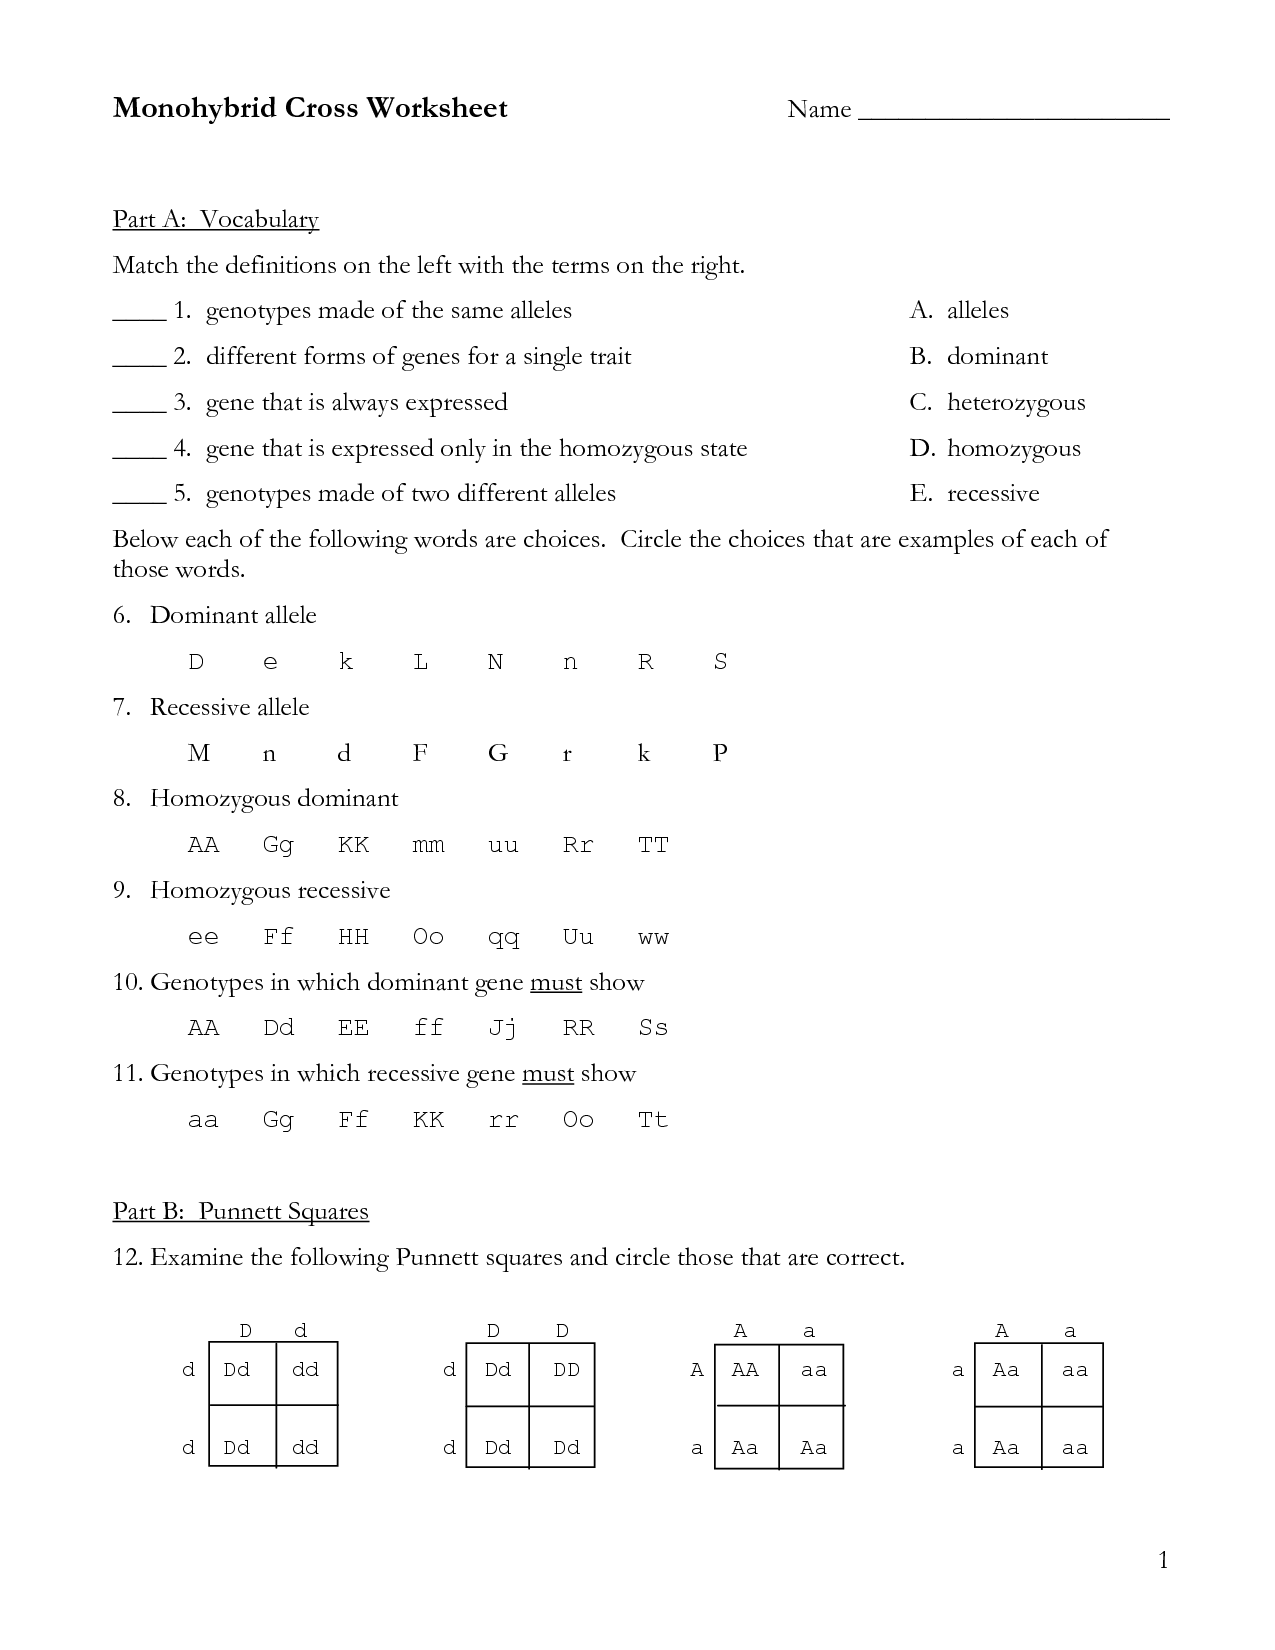 Dihybrid Cross Homework Problems Answer Key Free